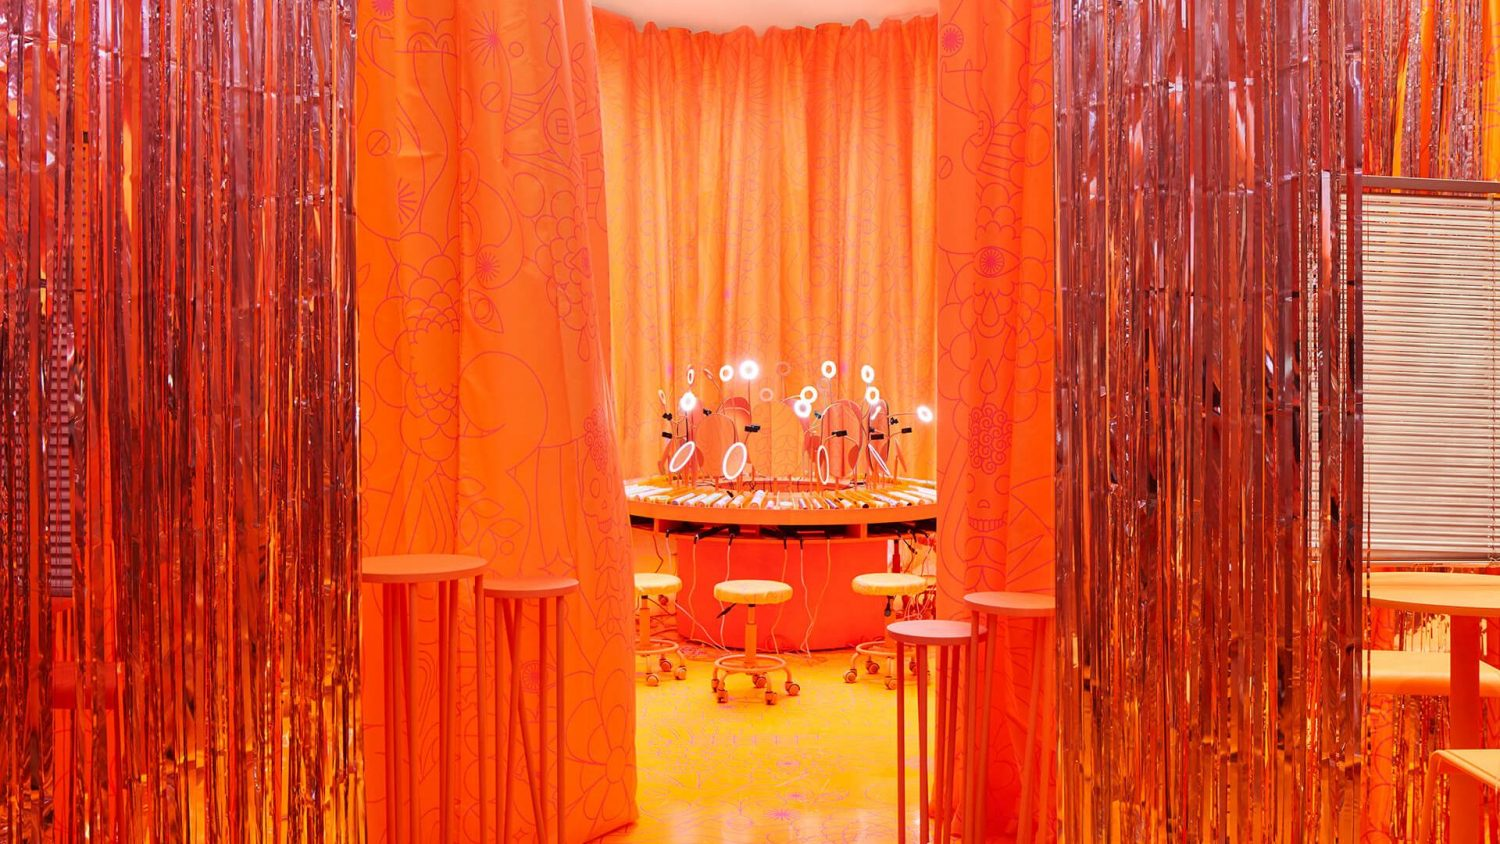 Top installations to see right now at NYCxDesign 2019 top installations to see right now at nycxdesign 2019 TOP INSTALLATIONS TO SEE RIGHT NOW AT NYCXDESIGN 2019 amika pop up